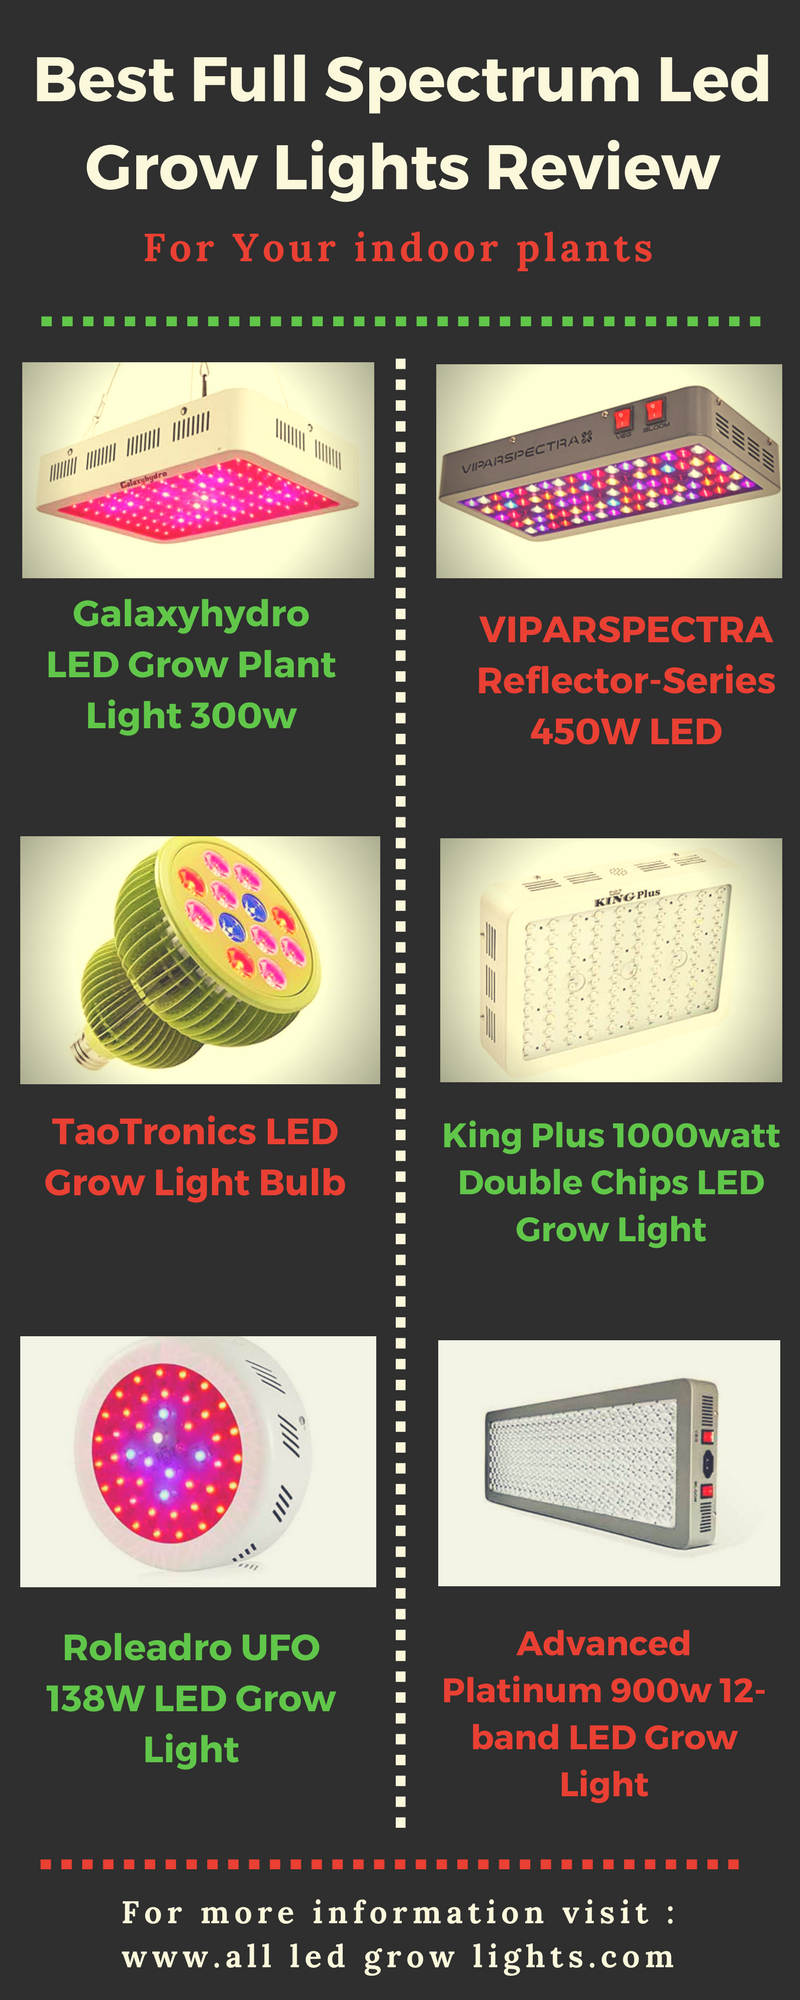 Best Full Spectrum Led Grow Lights Reviews In 2018 For Your Indoor